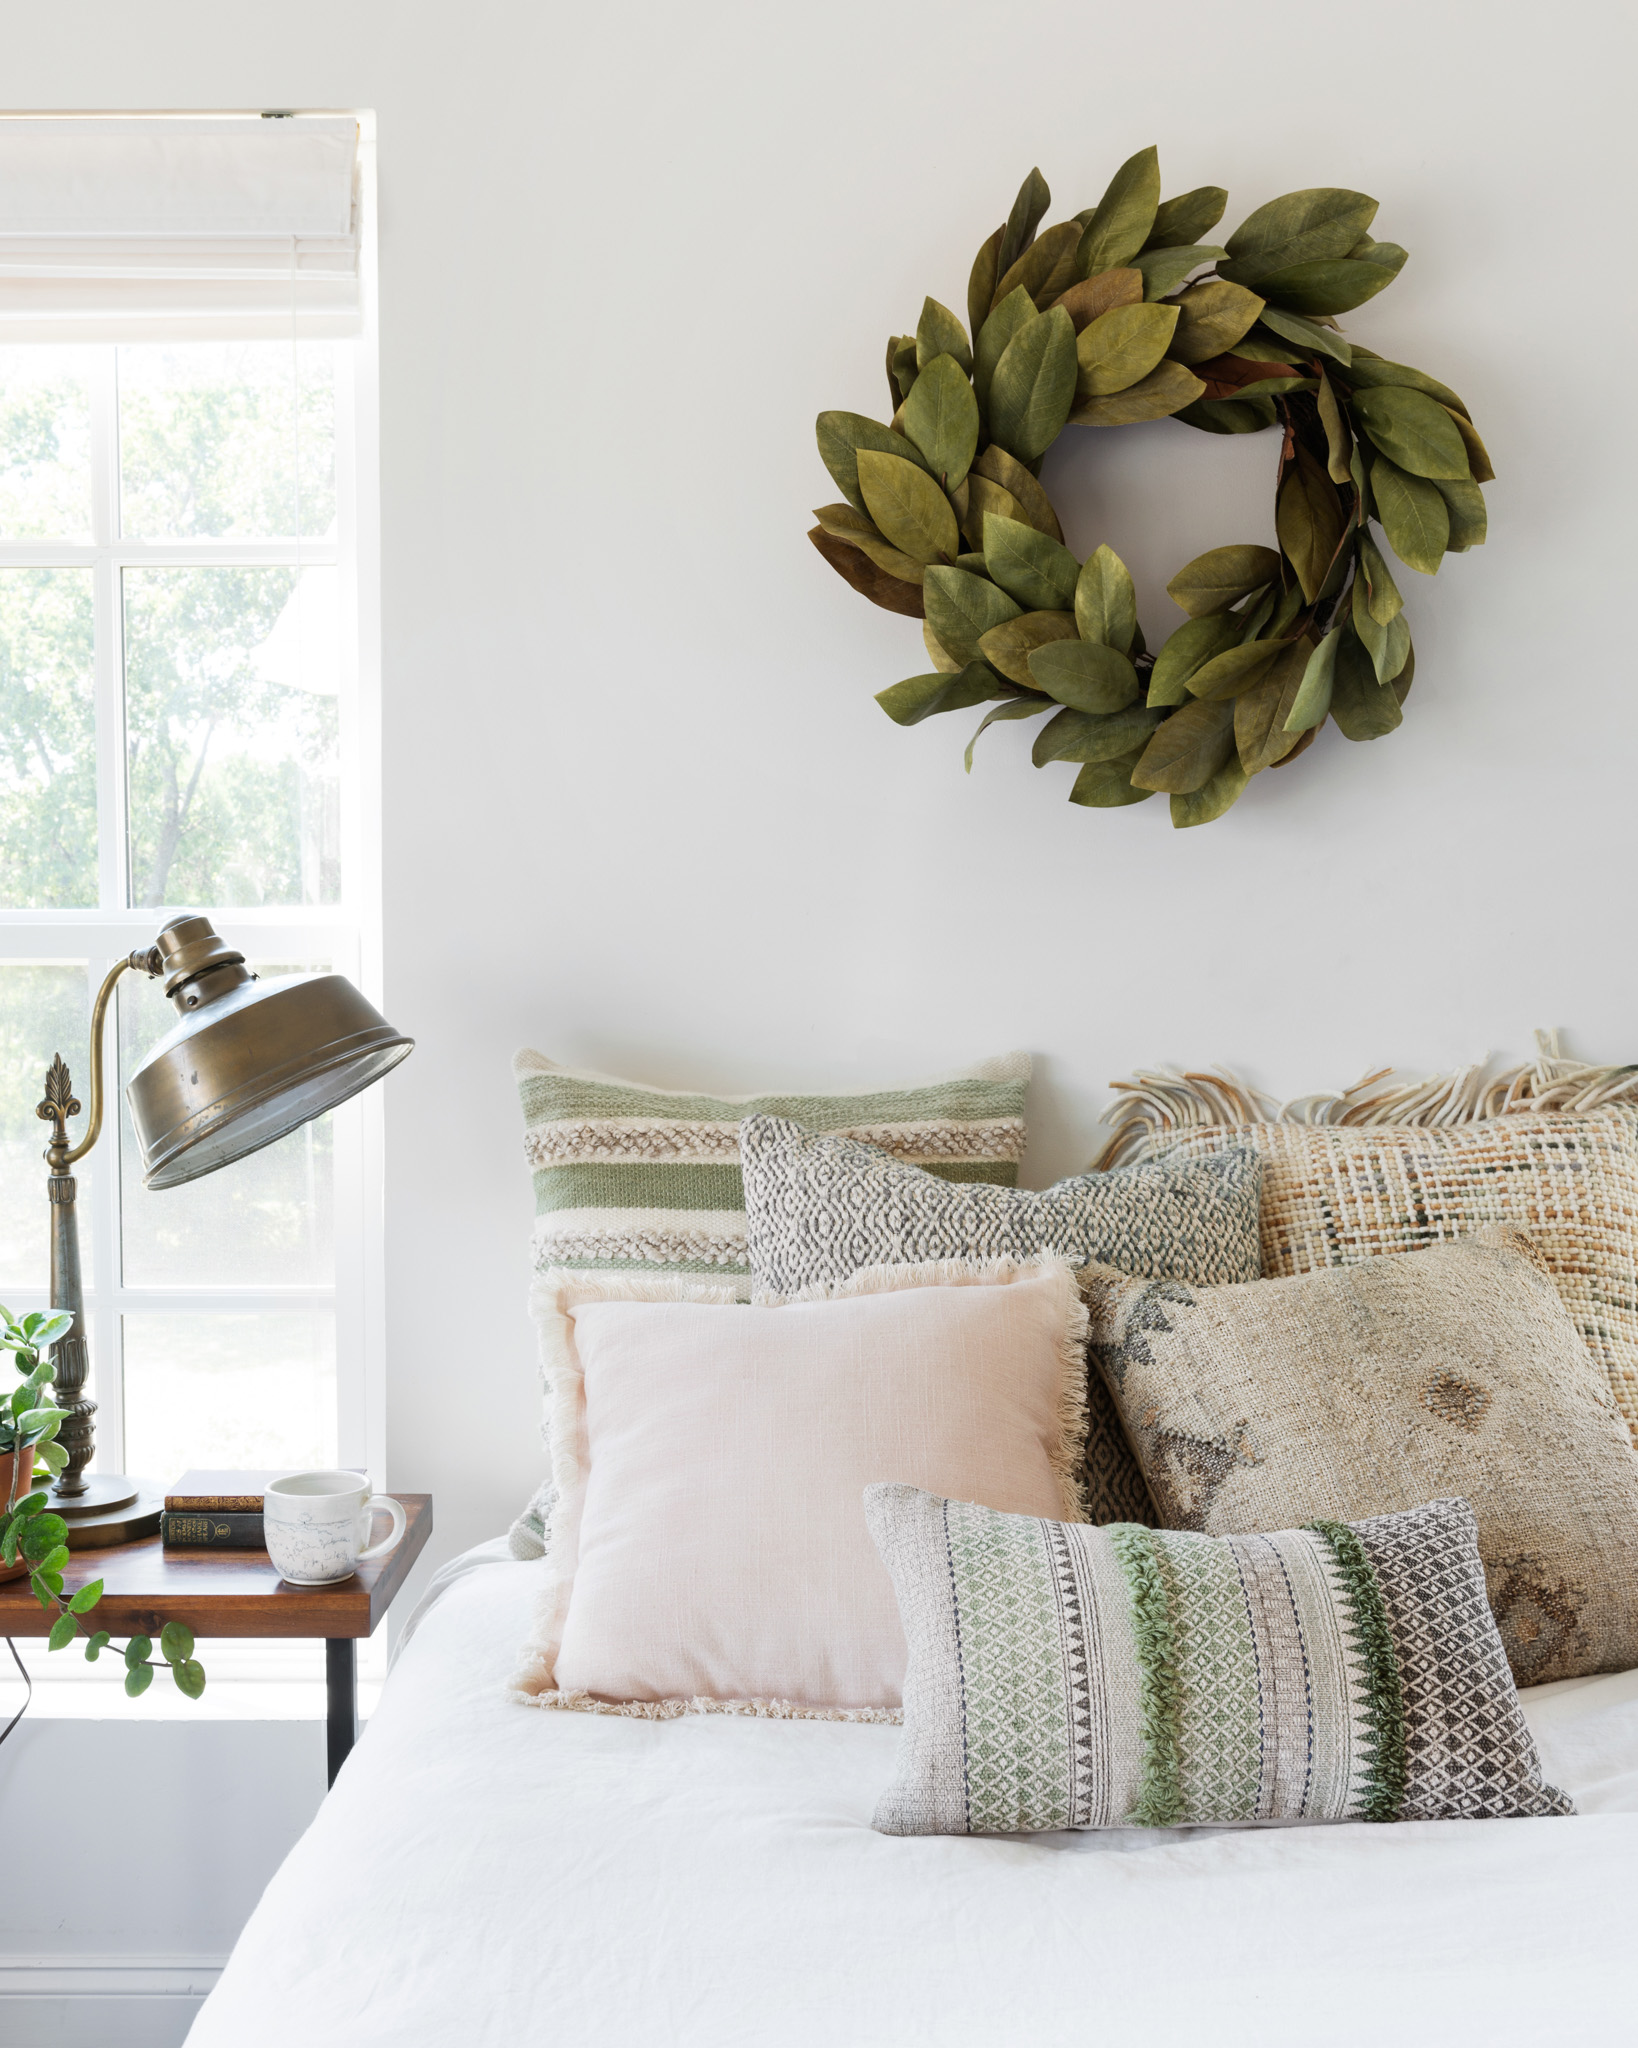 joanna gaines new rug collection